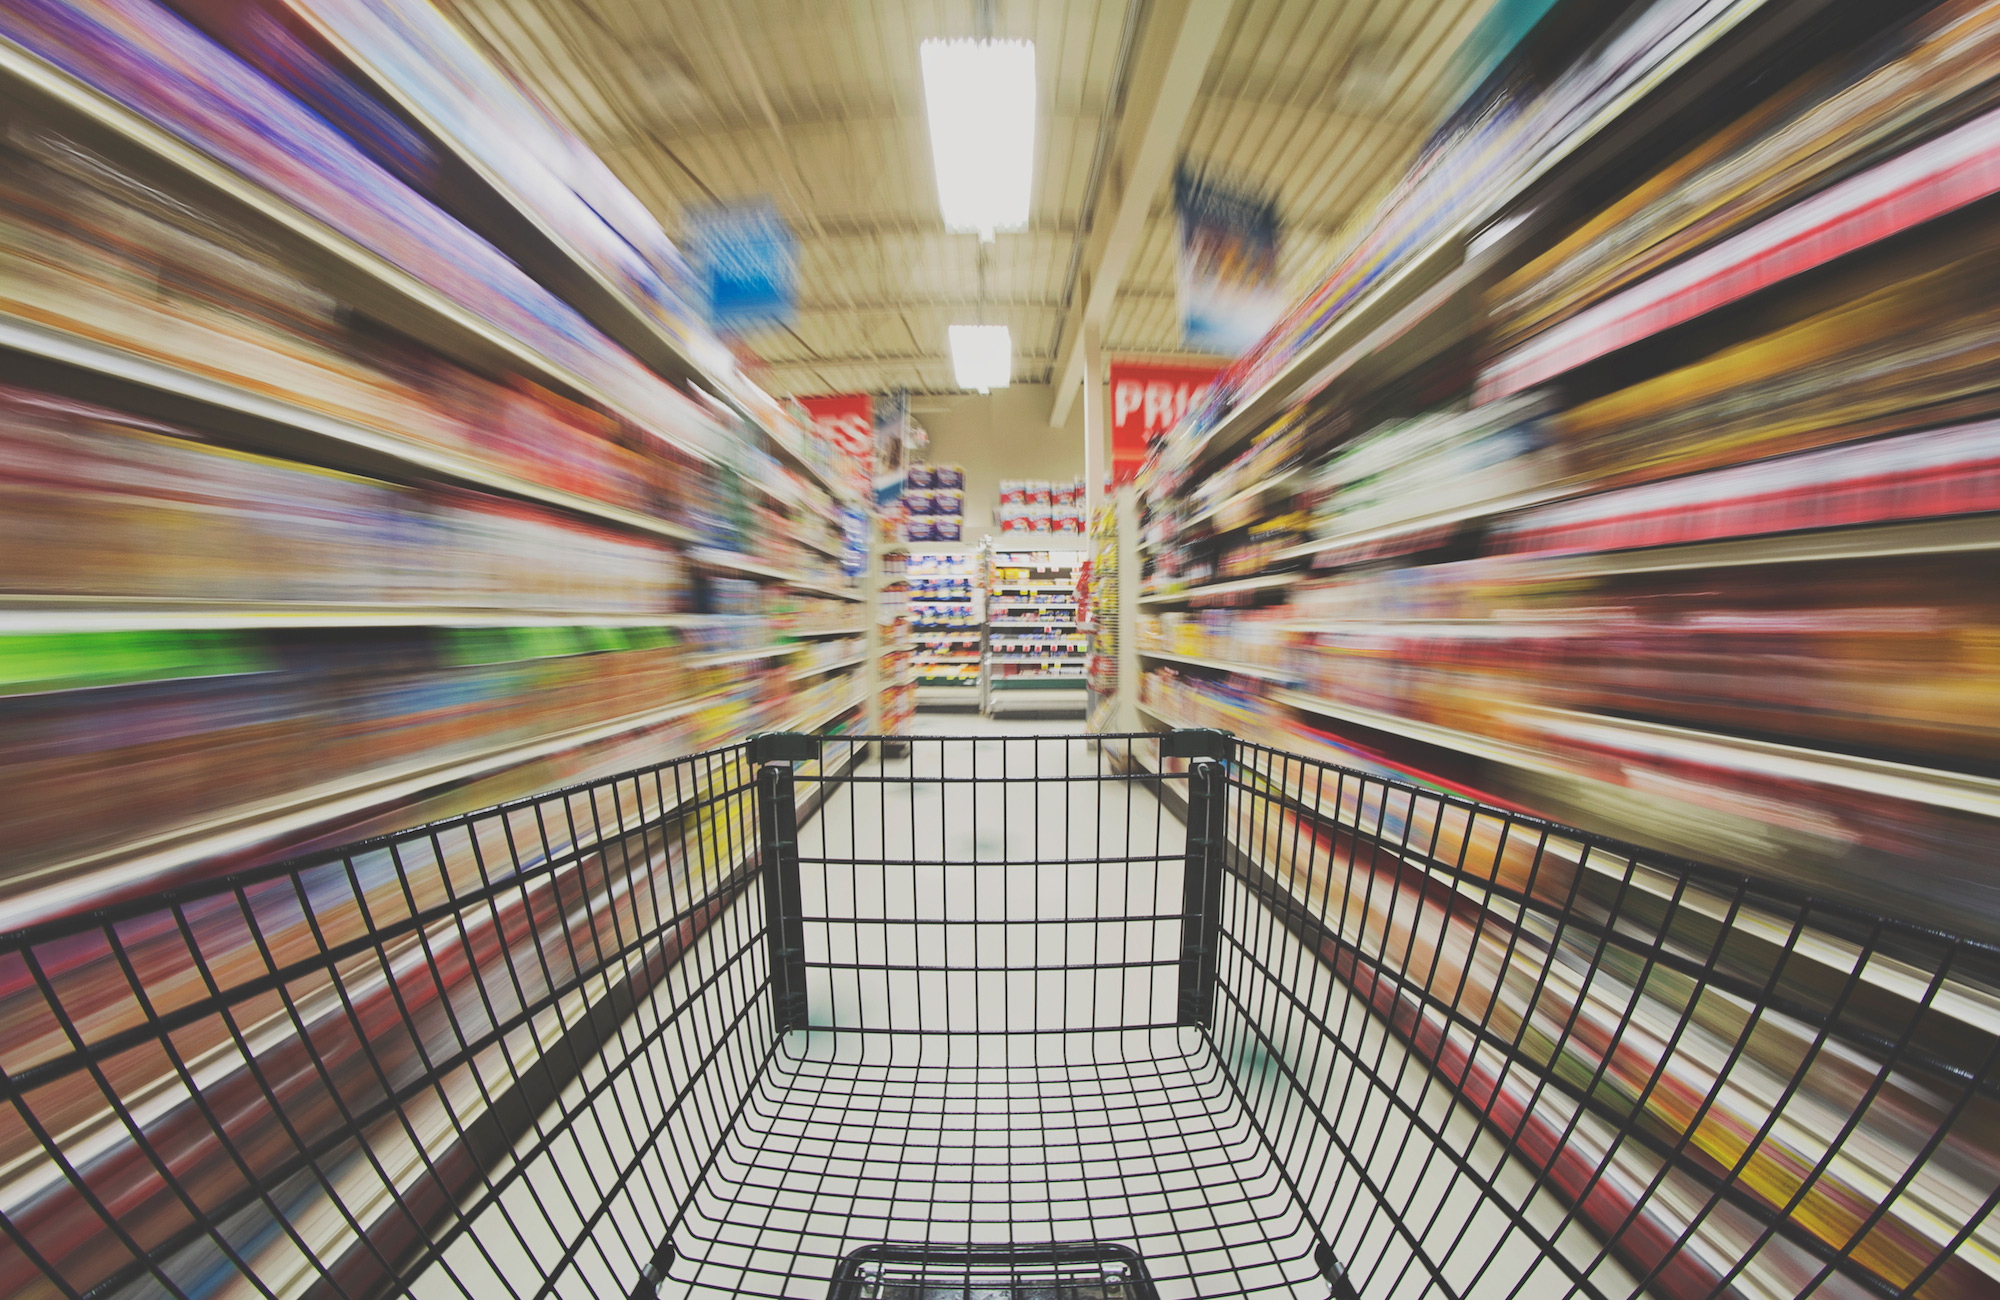 blurry grocery store aisles person pushing a cart